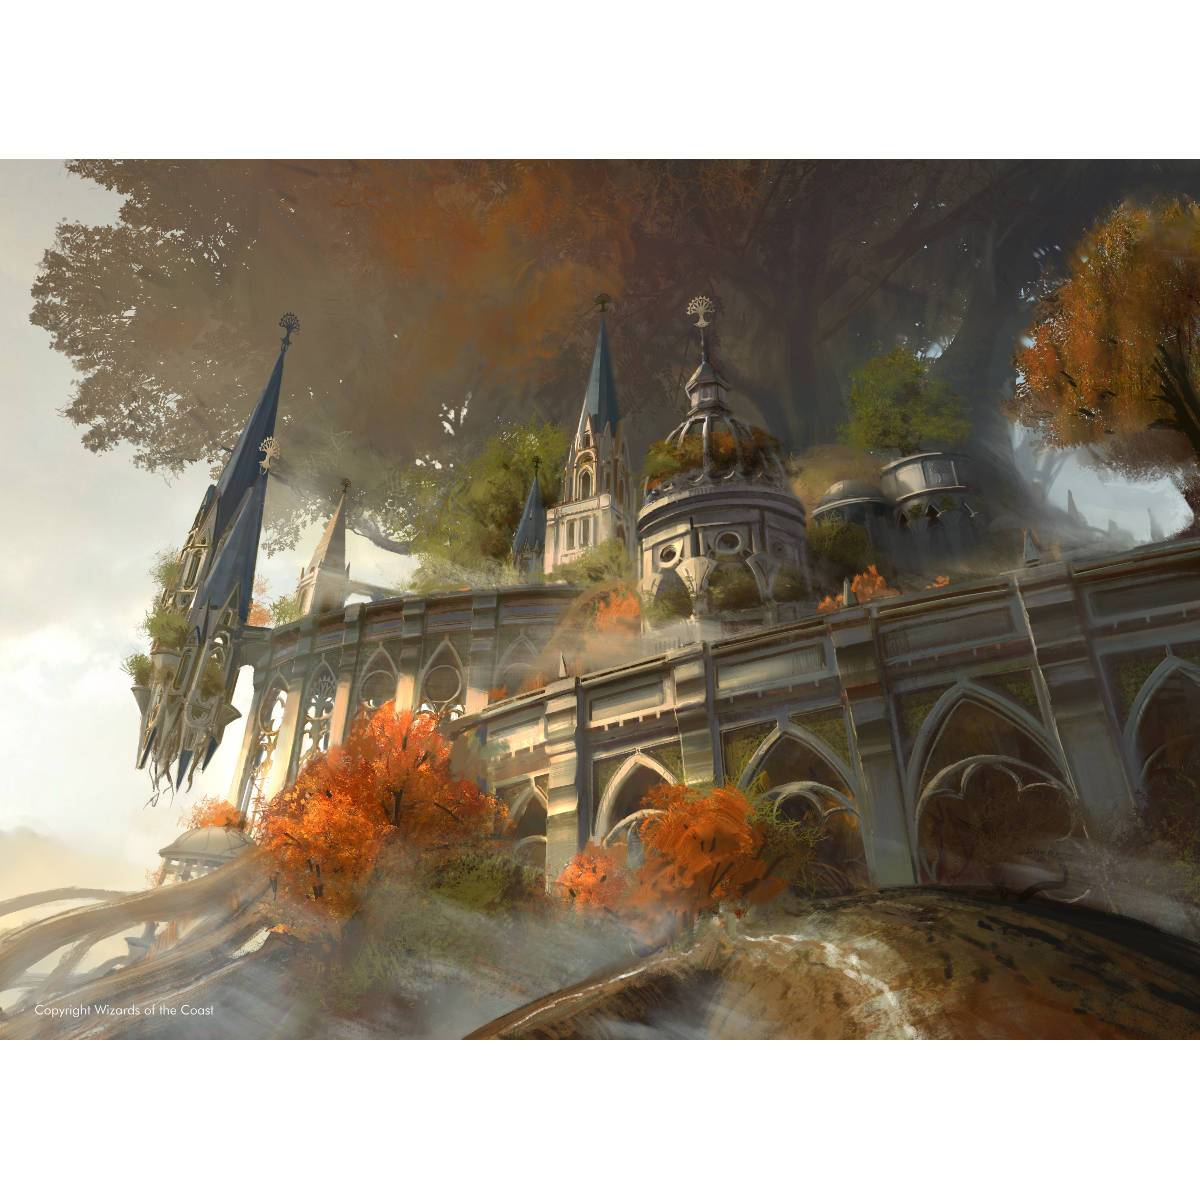 Temple Garden Print - Print - Original Magic Art - Accessories for Magic the Gathering and other card games